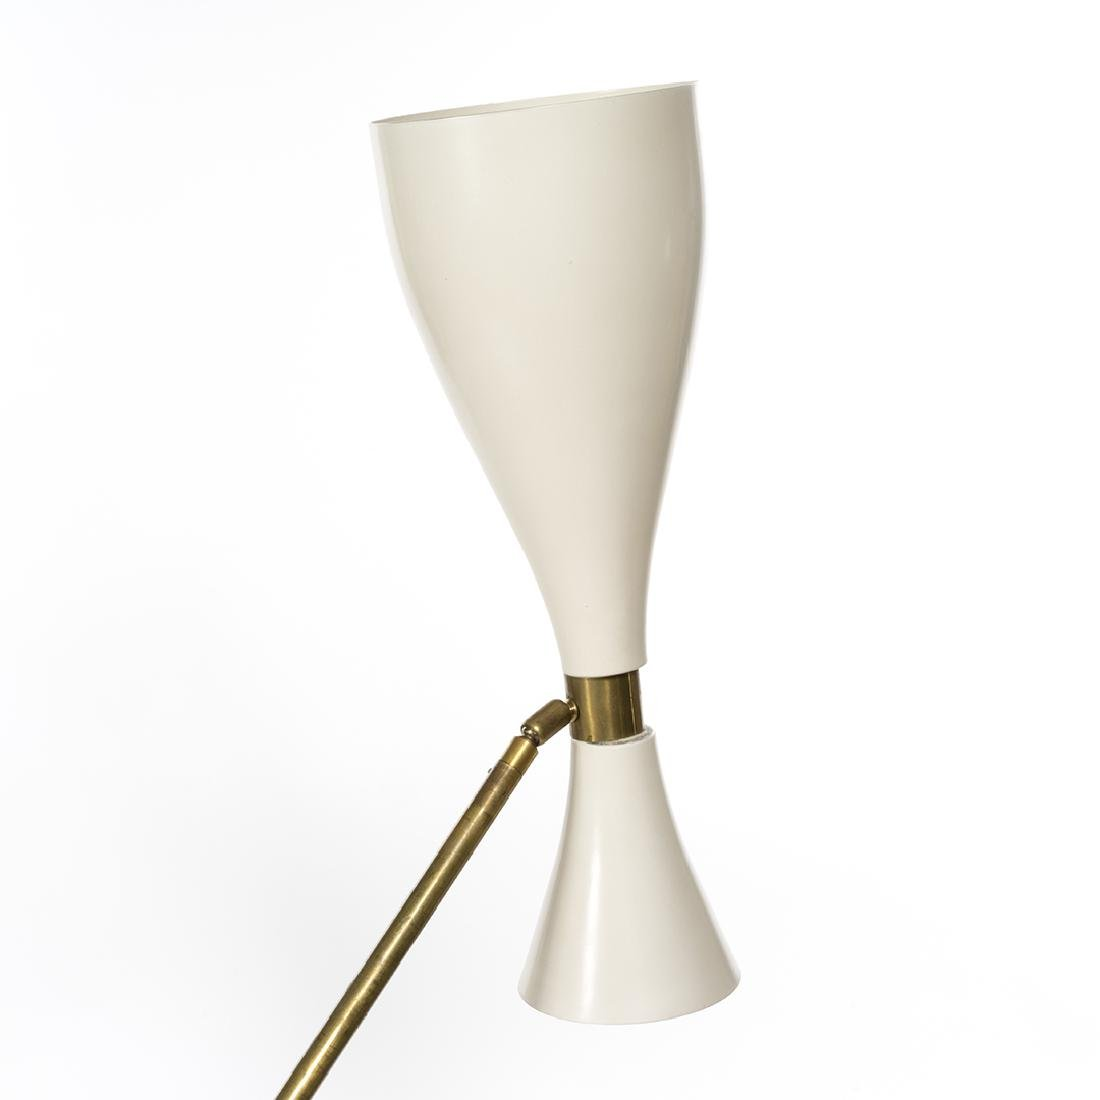 Italian Adjustable Floor Lamps (2) - 5